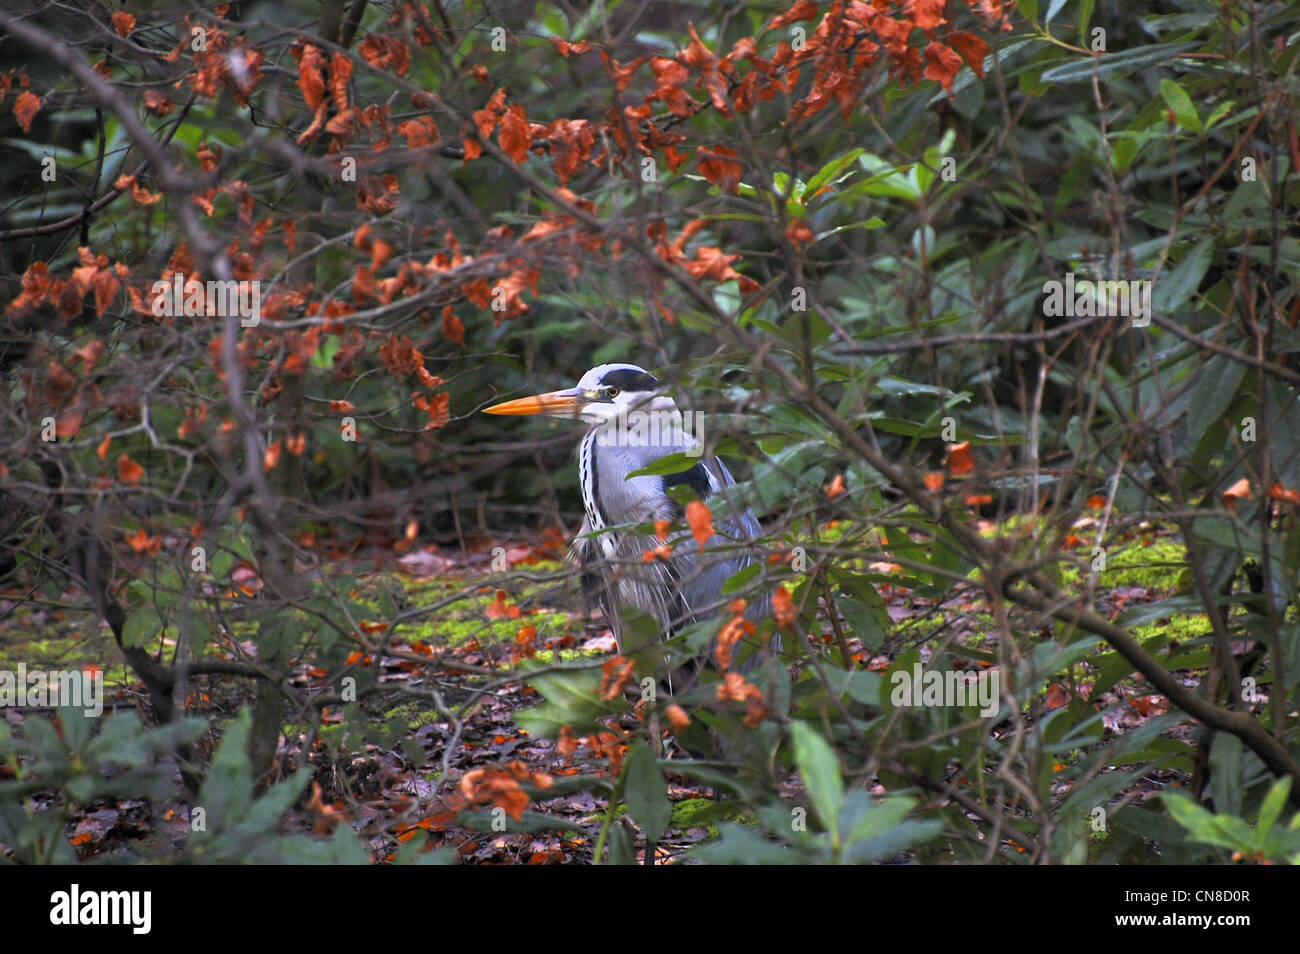 Heron partially concealed in shrubbery - Stock Image